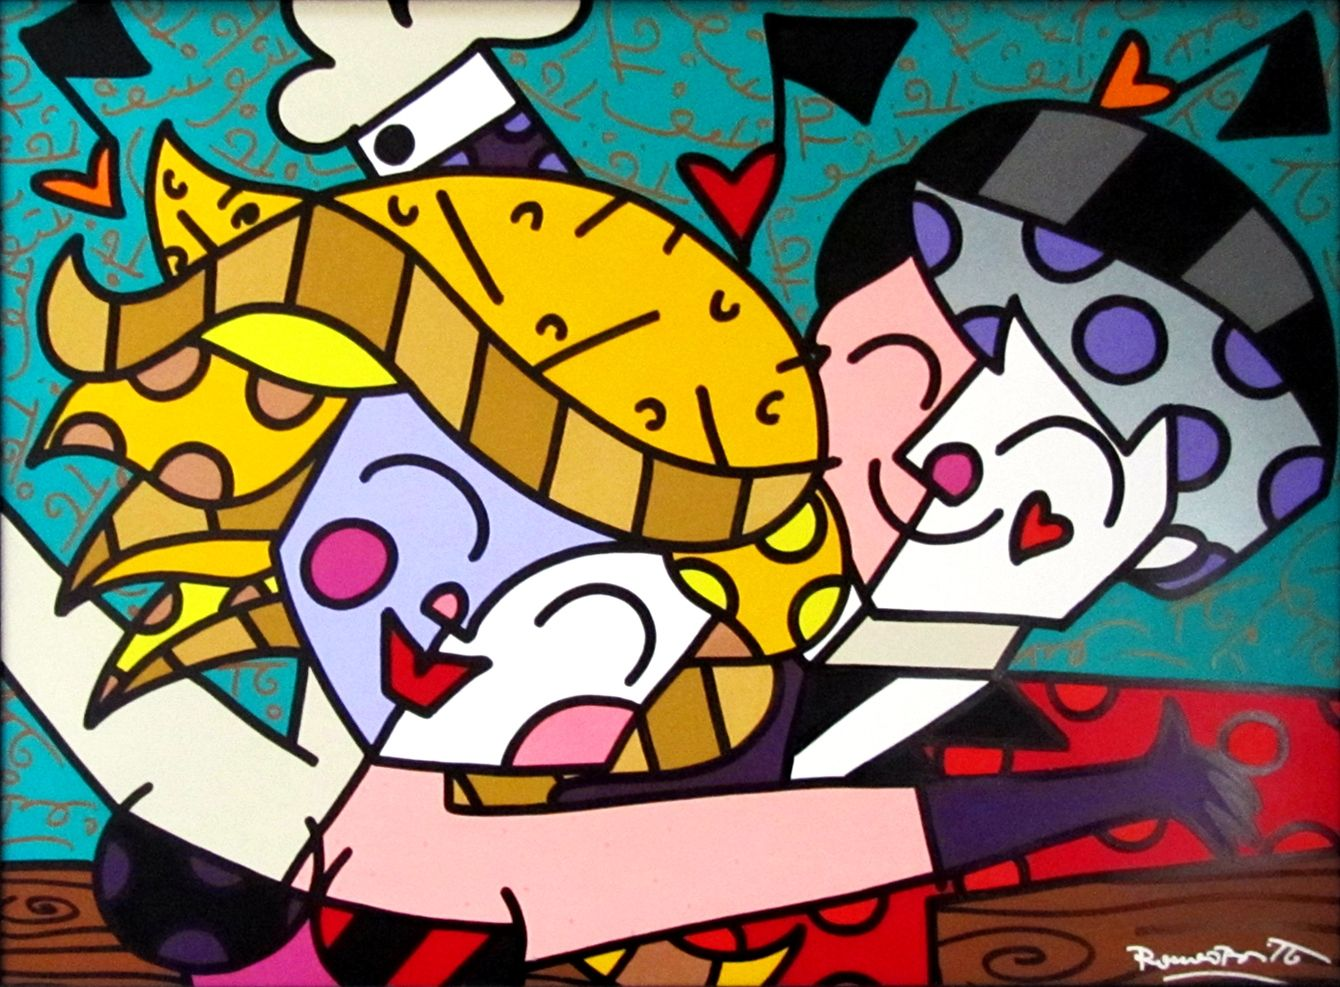 romero-britto-party-time-paintings-acrylic-zoom.jpg (1340×987)